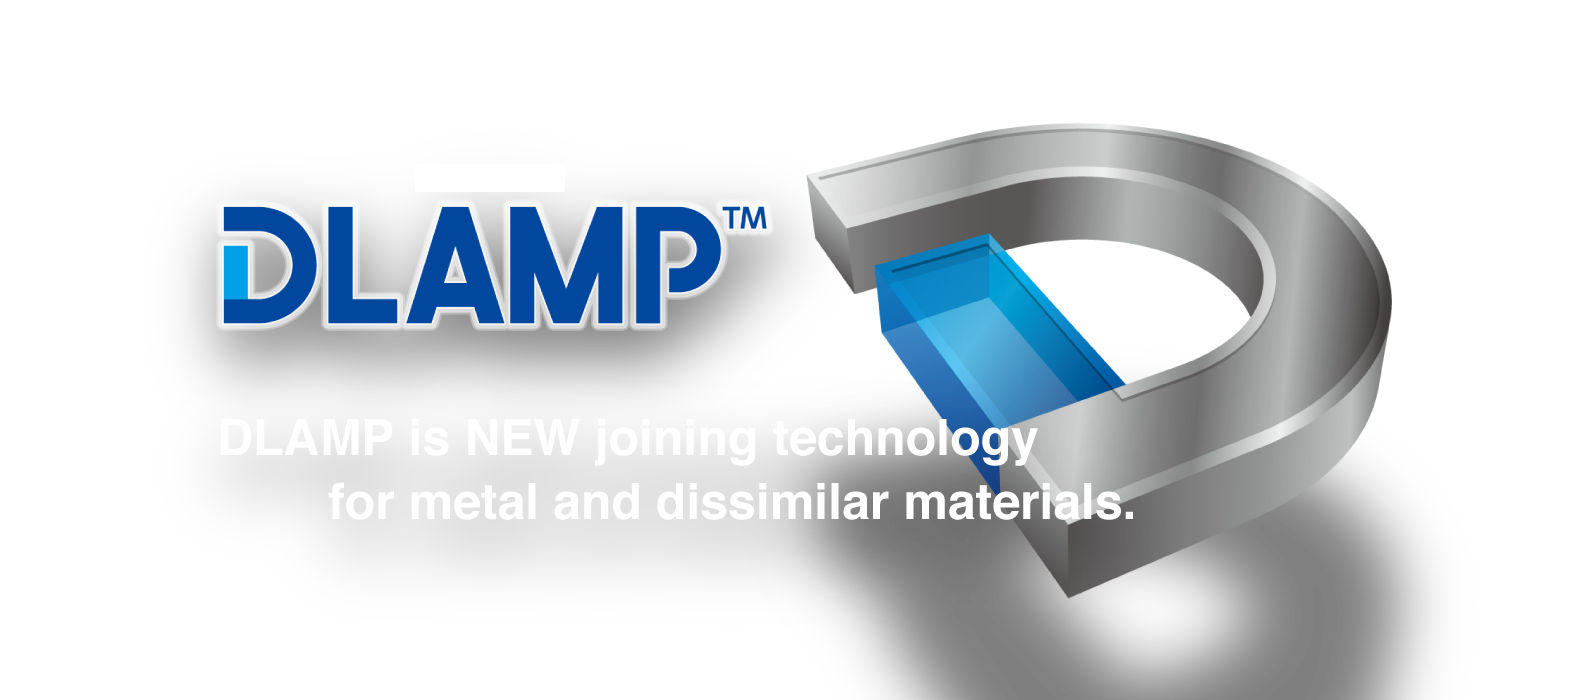 DLAMP is NEW joining technology for metal and dissimilar materials.